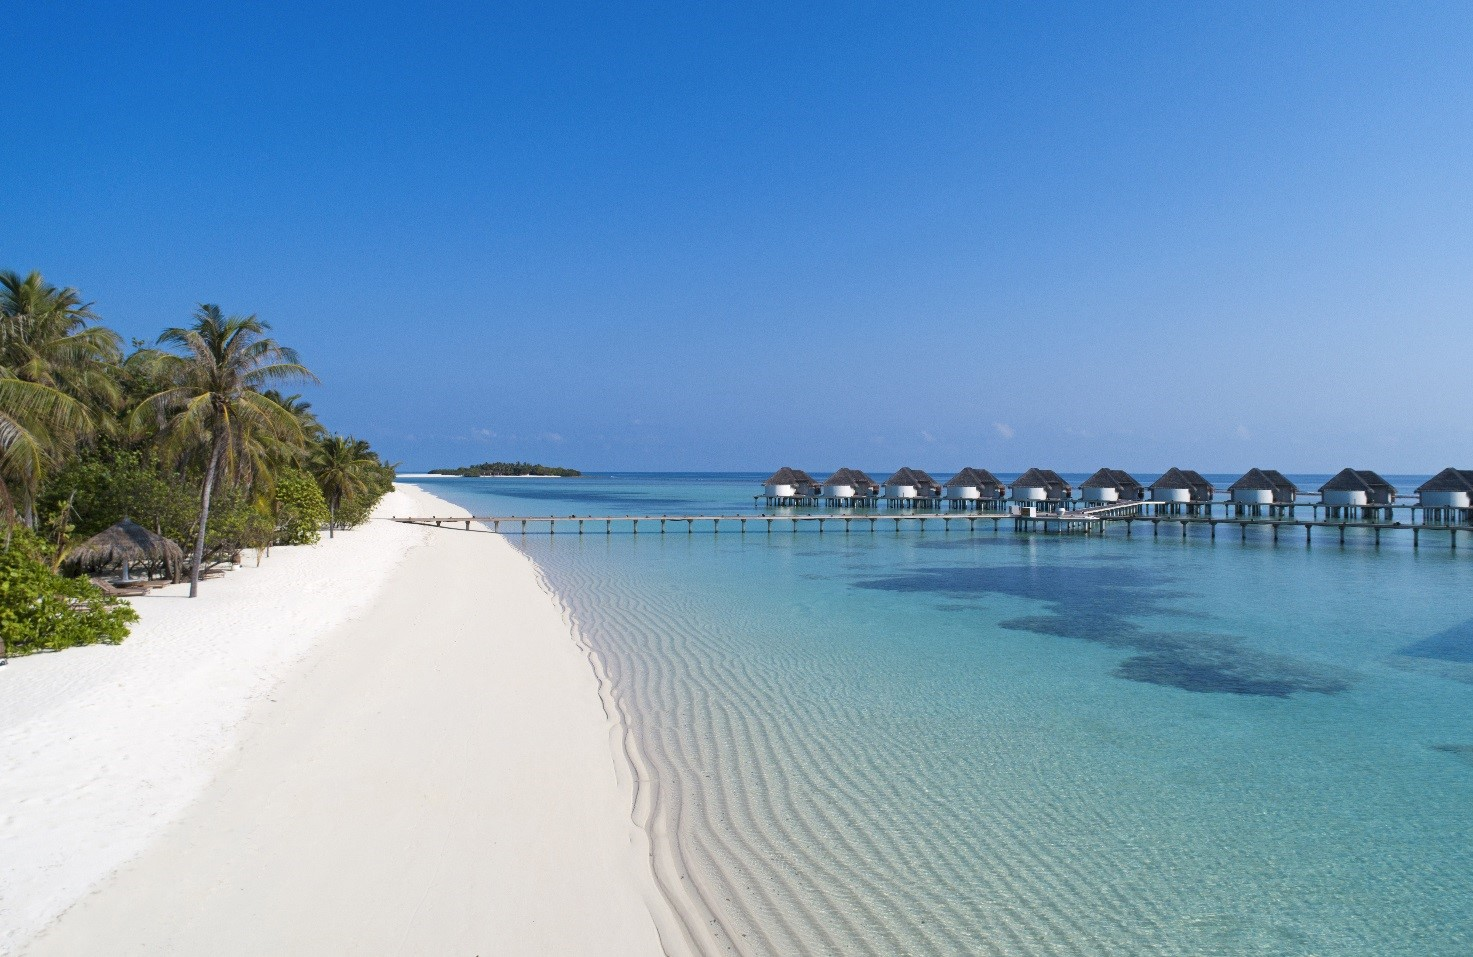 Maldive luxury: Kanuhura Resort